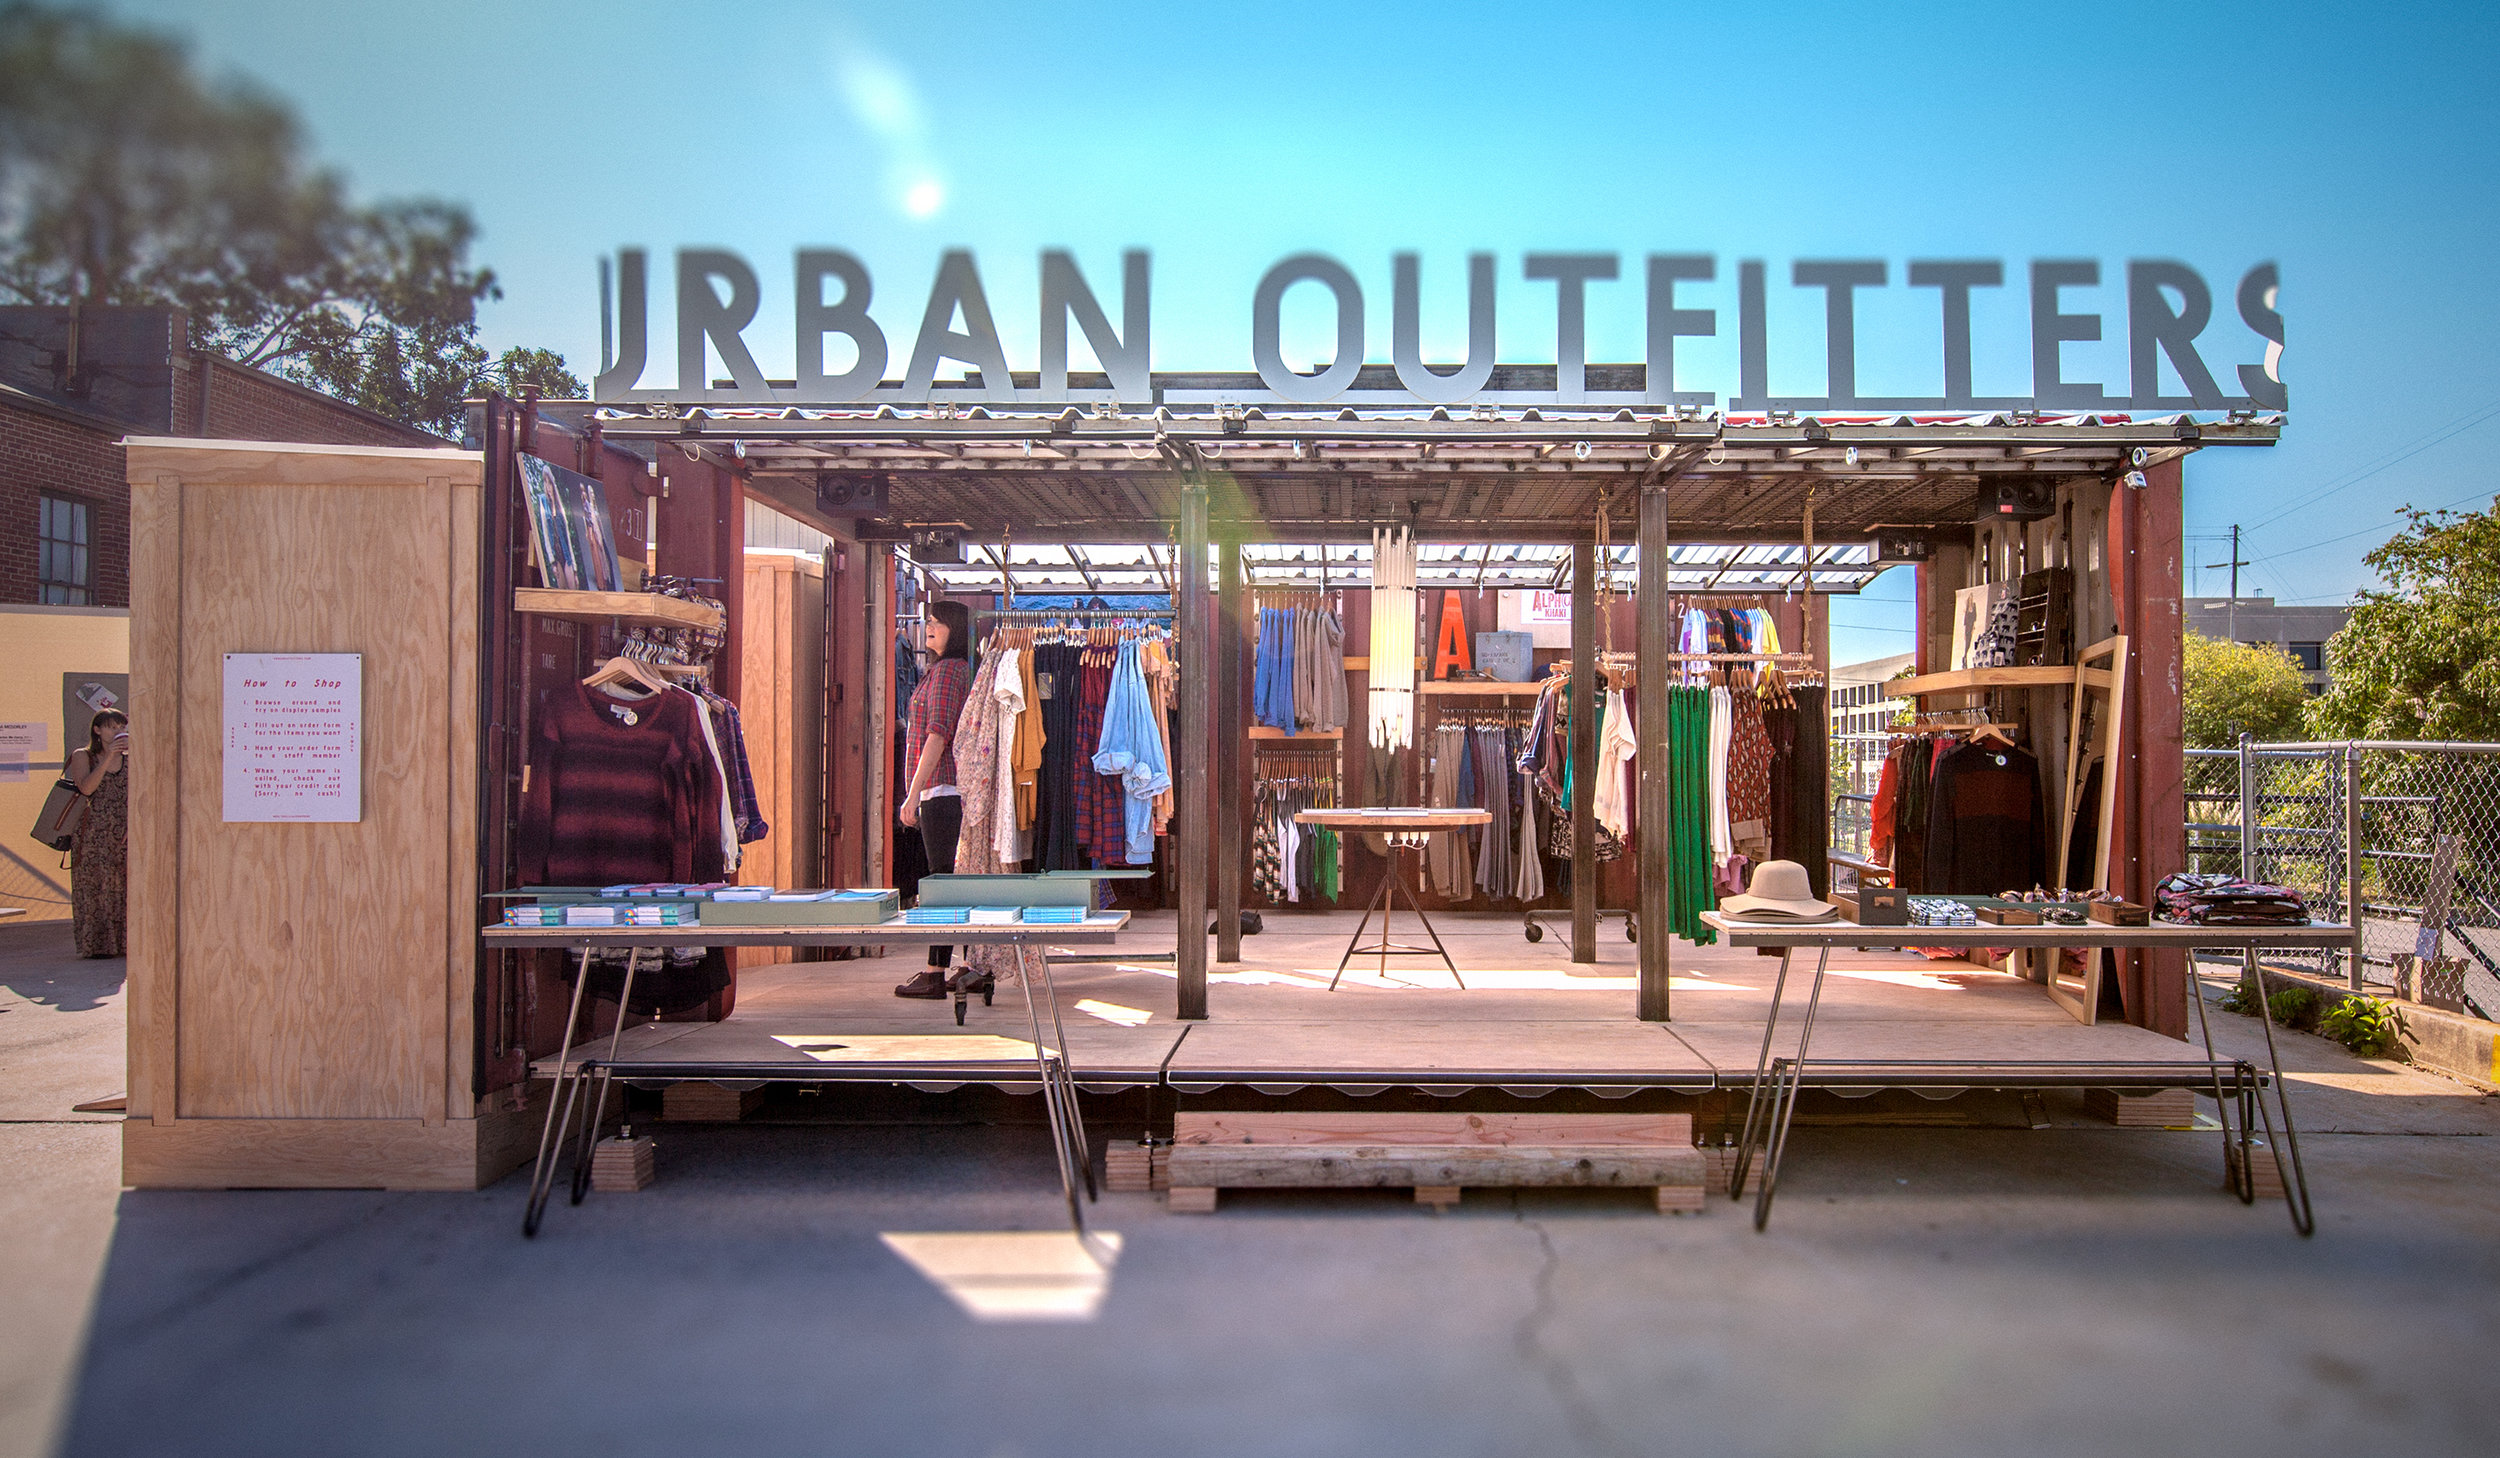 ImagiCorps was hired by 206 Inc. to work with Urban Outfitters to create a mobile retail store.